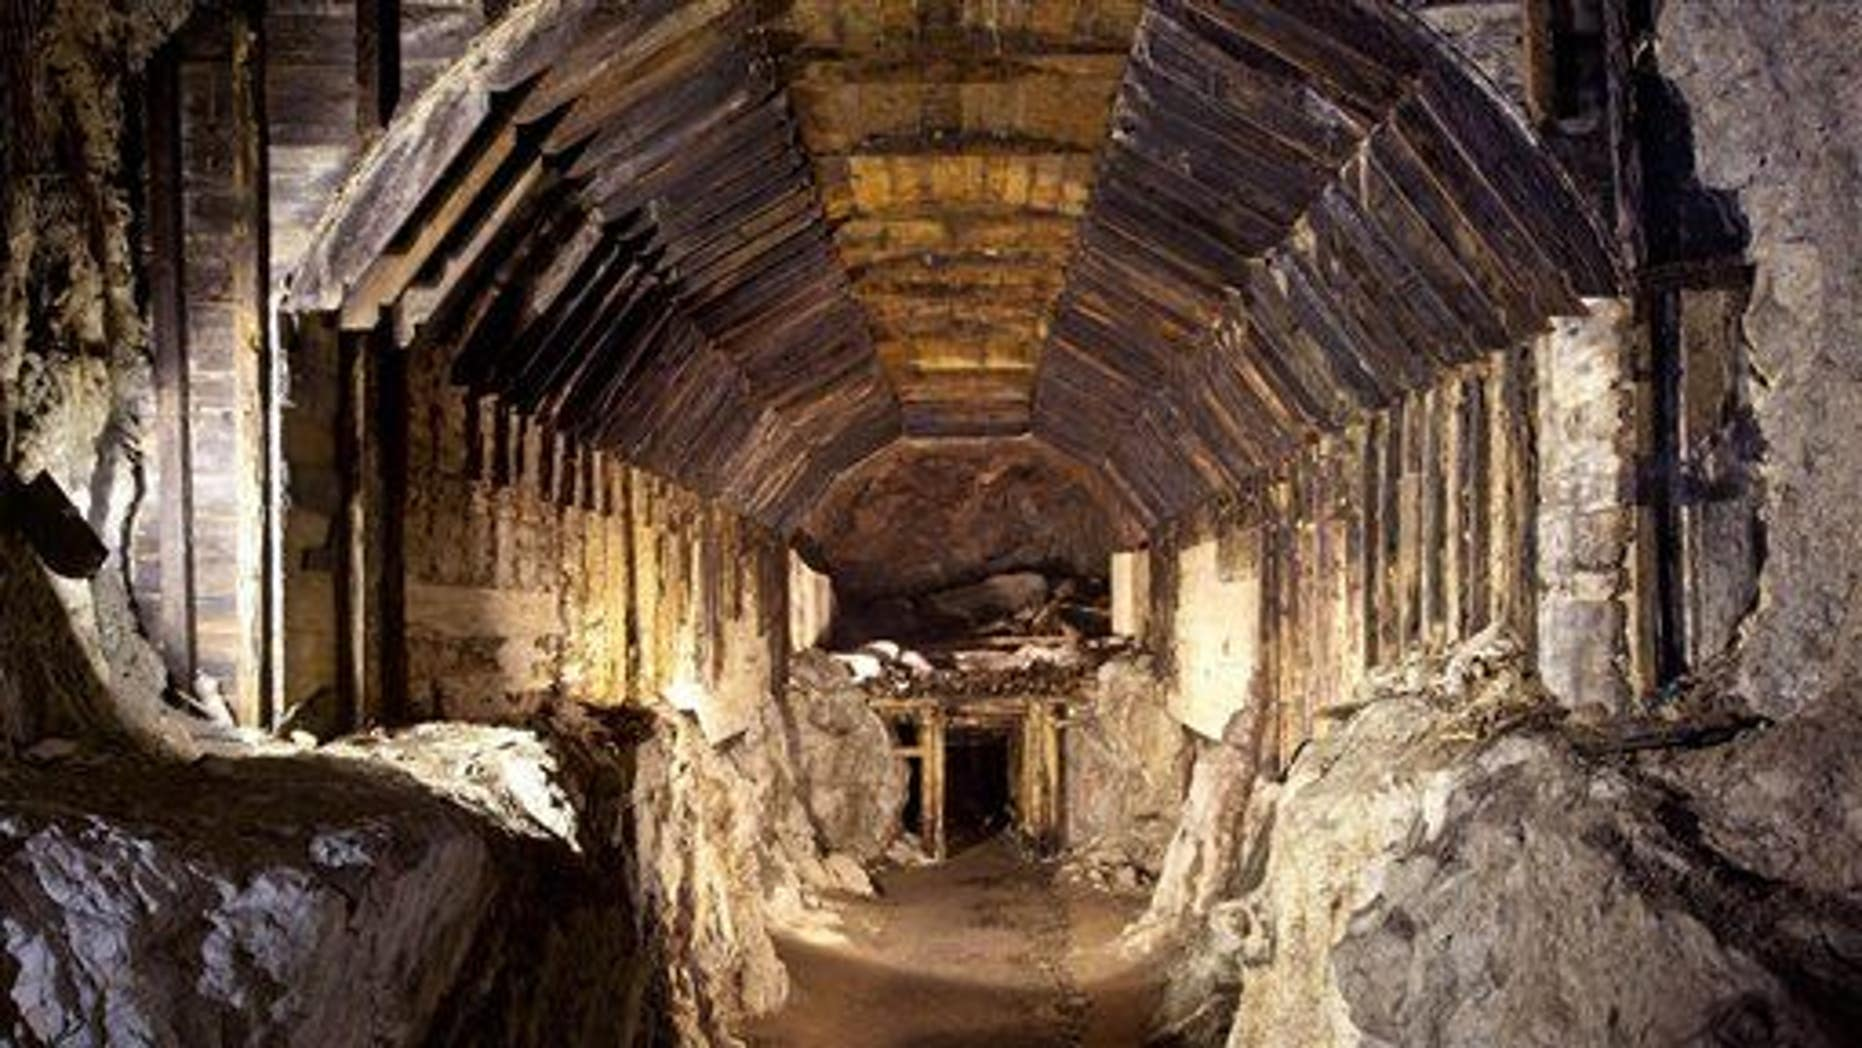 This file photo from March 2012 shows part of a subterranean system built by Nazi Germany in what's today Gluszyca-Osowka, Poland.